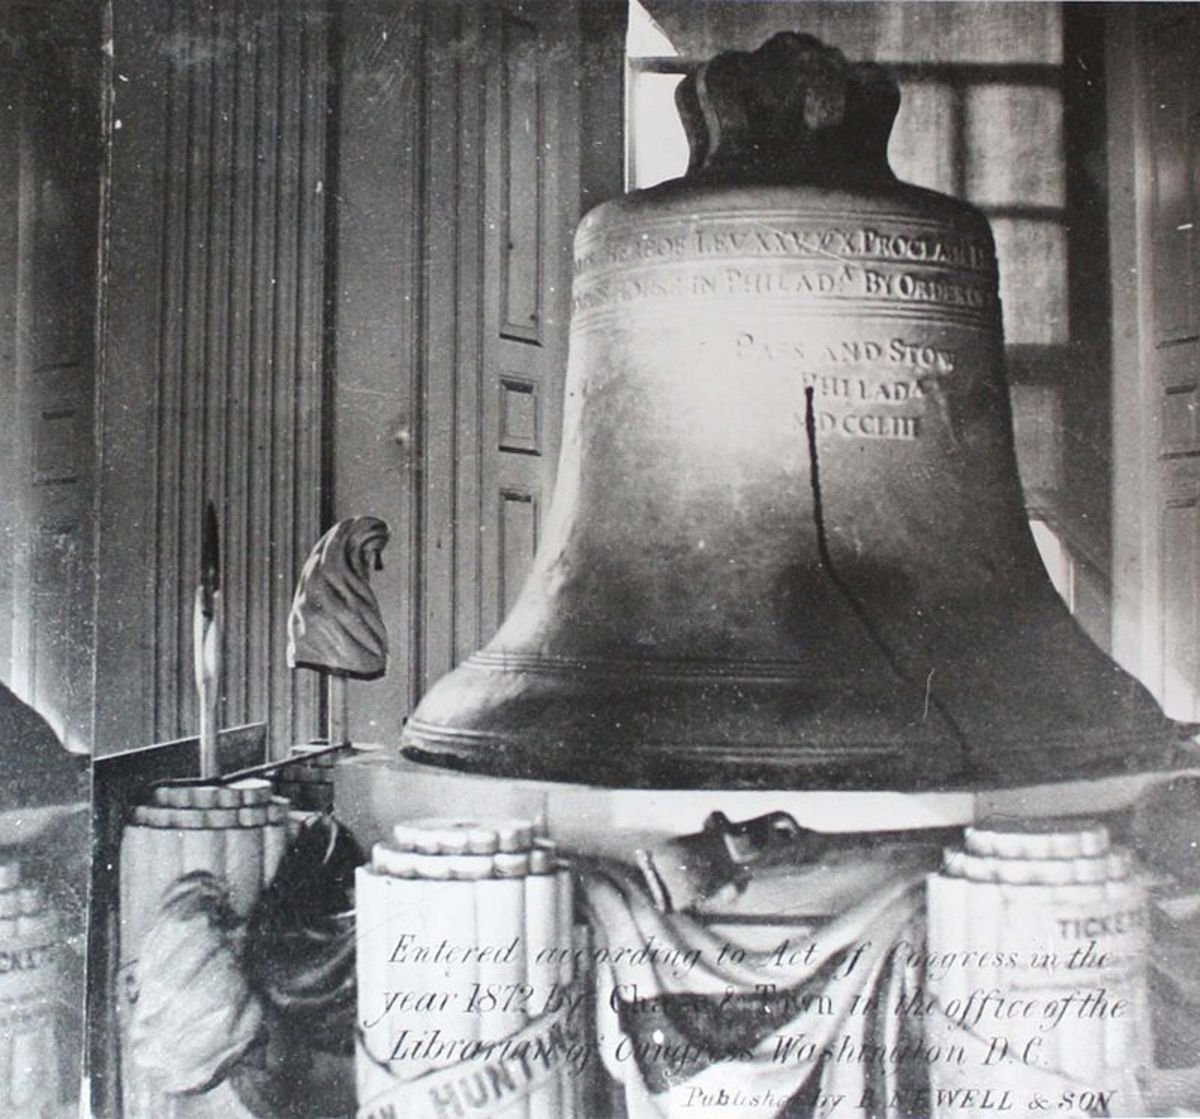 The Liberty Bell on its stand at Independence National Historic Park Library and Archives, Philadelphia PA.